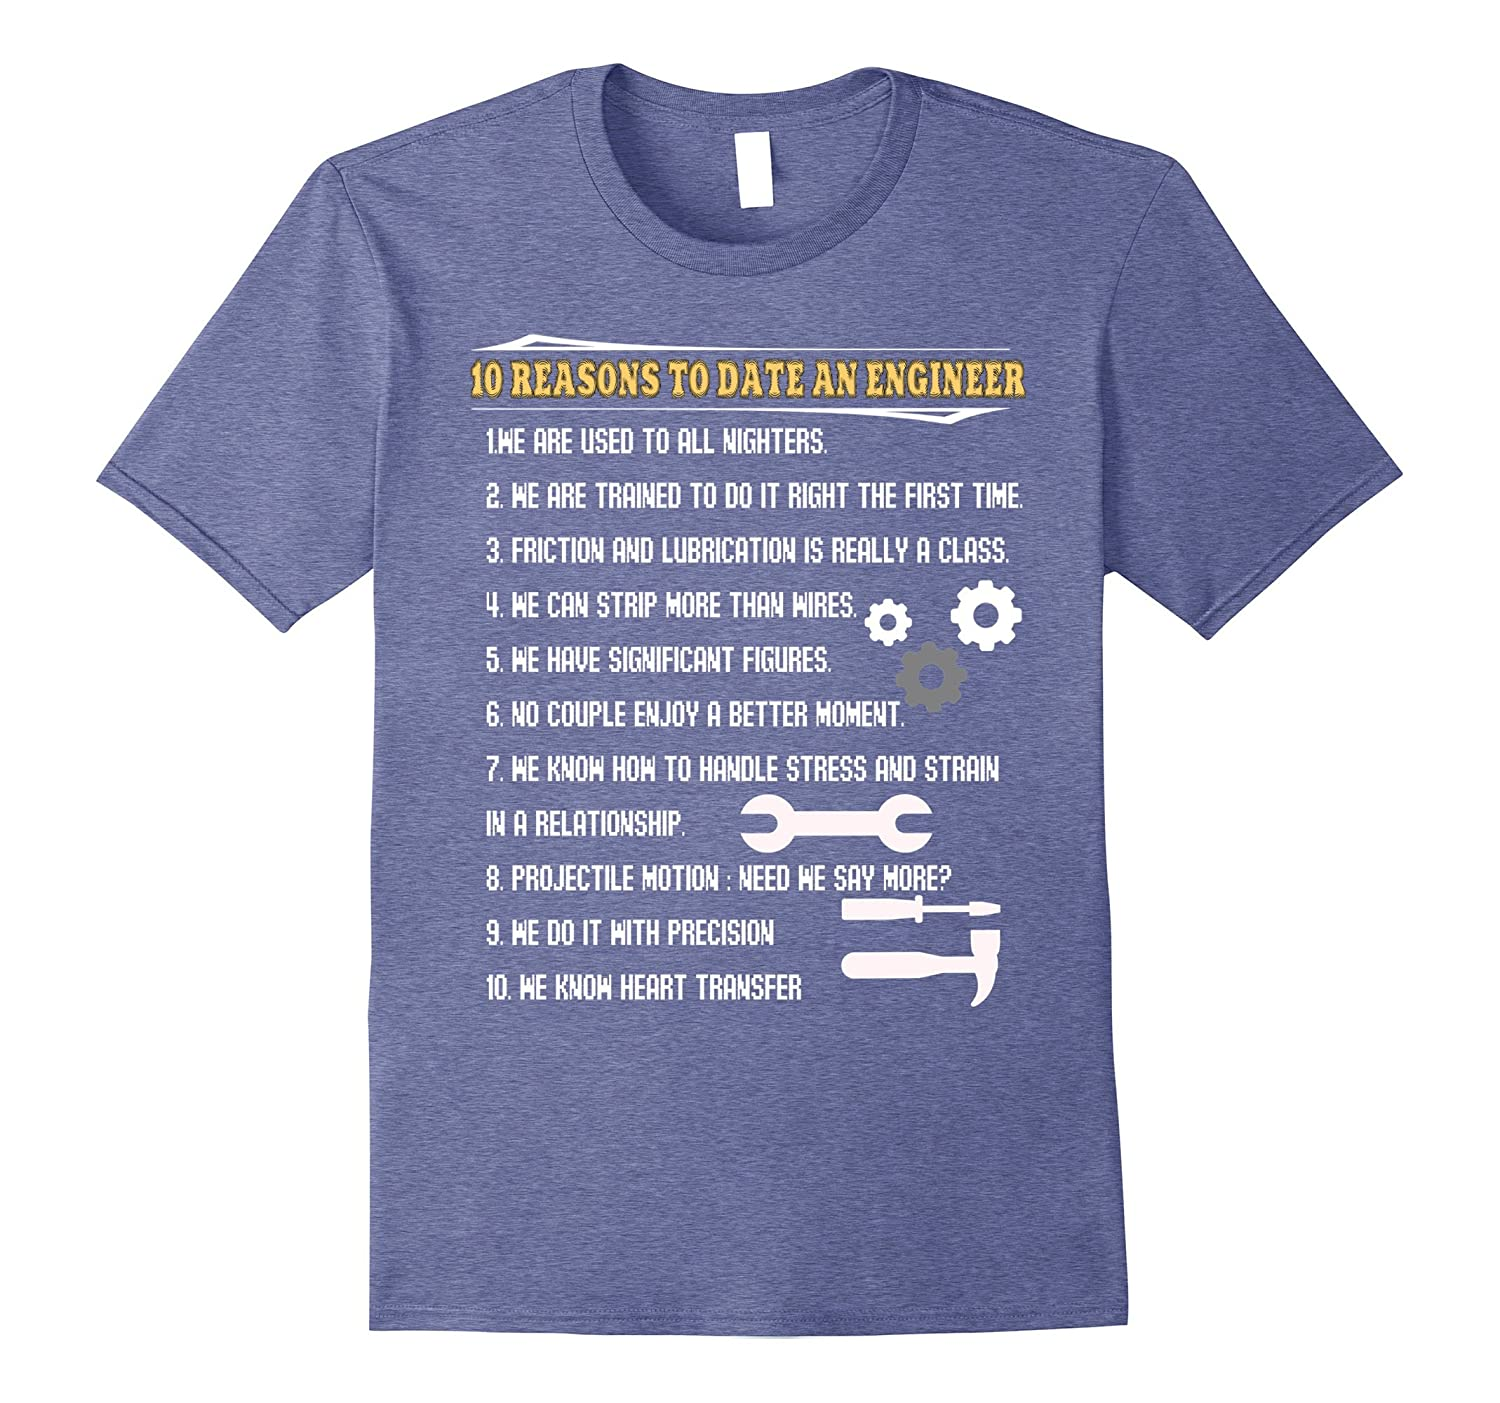 10 Reasons To Date An Engineer T Shirt Job T Shirt-TJ